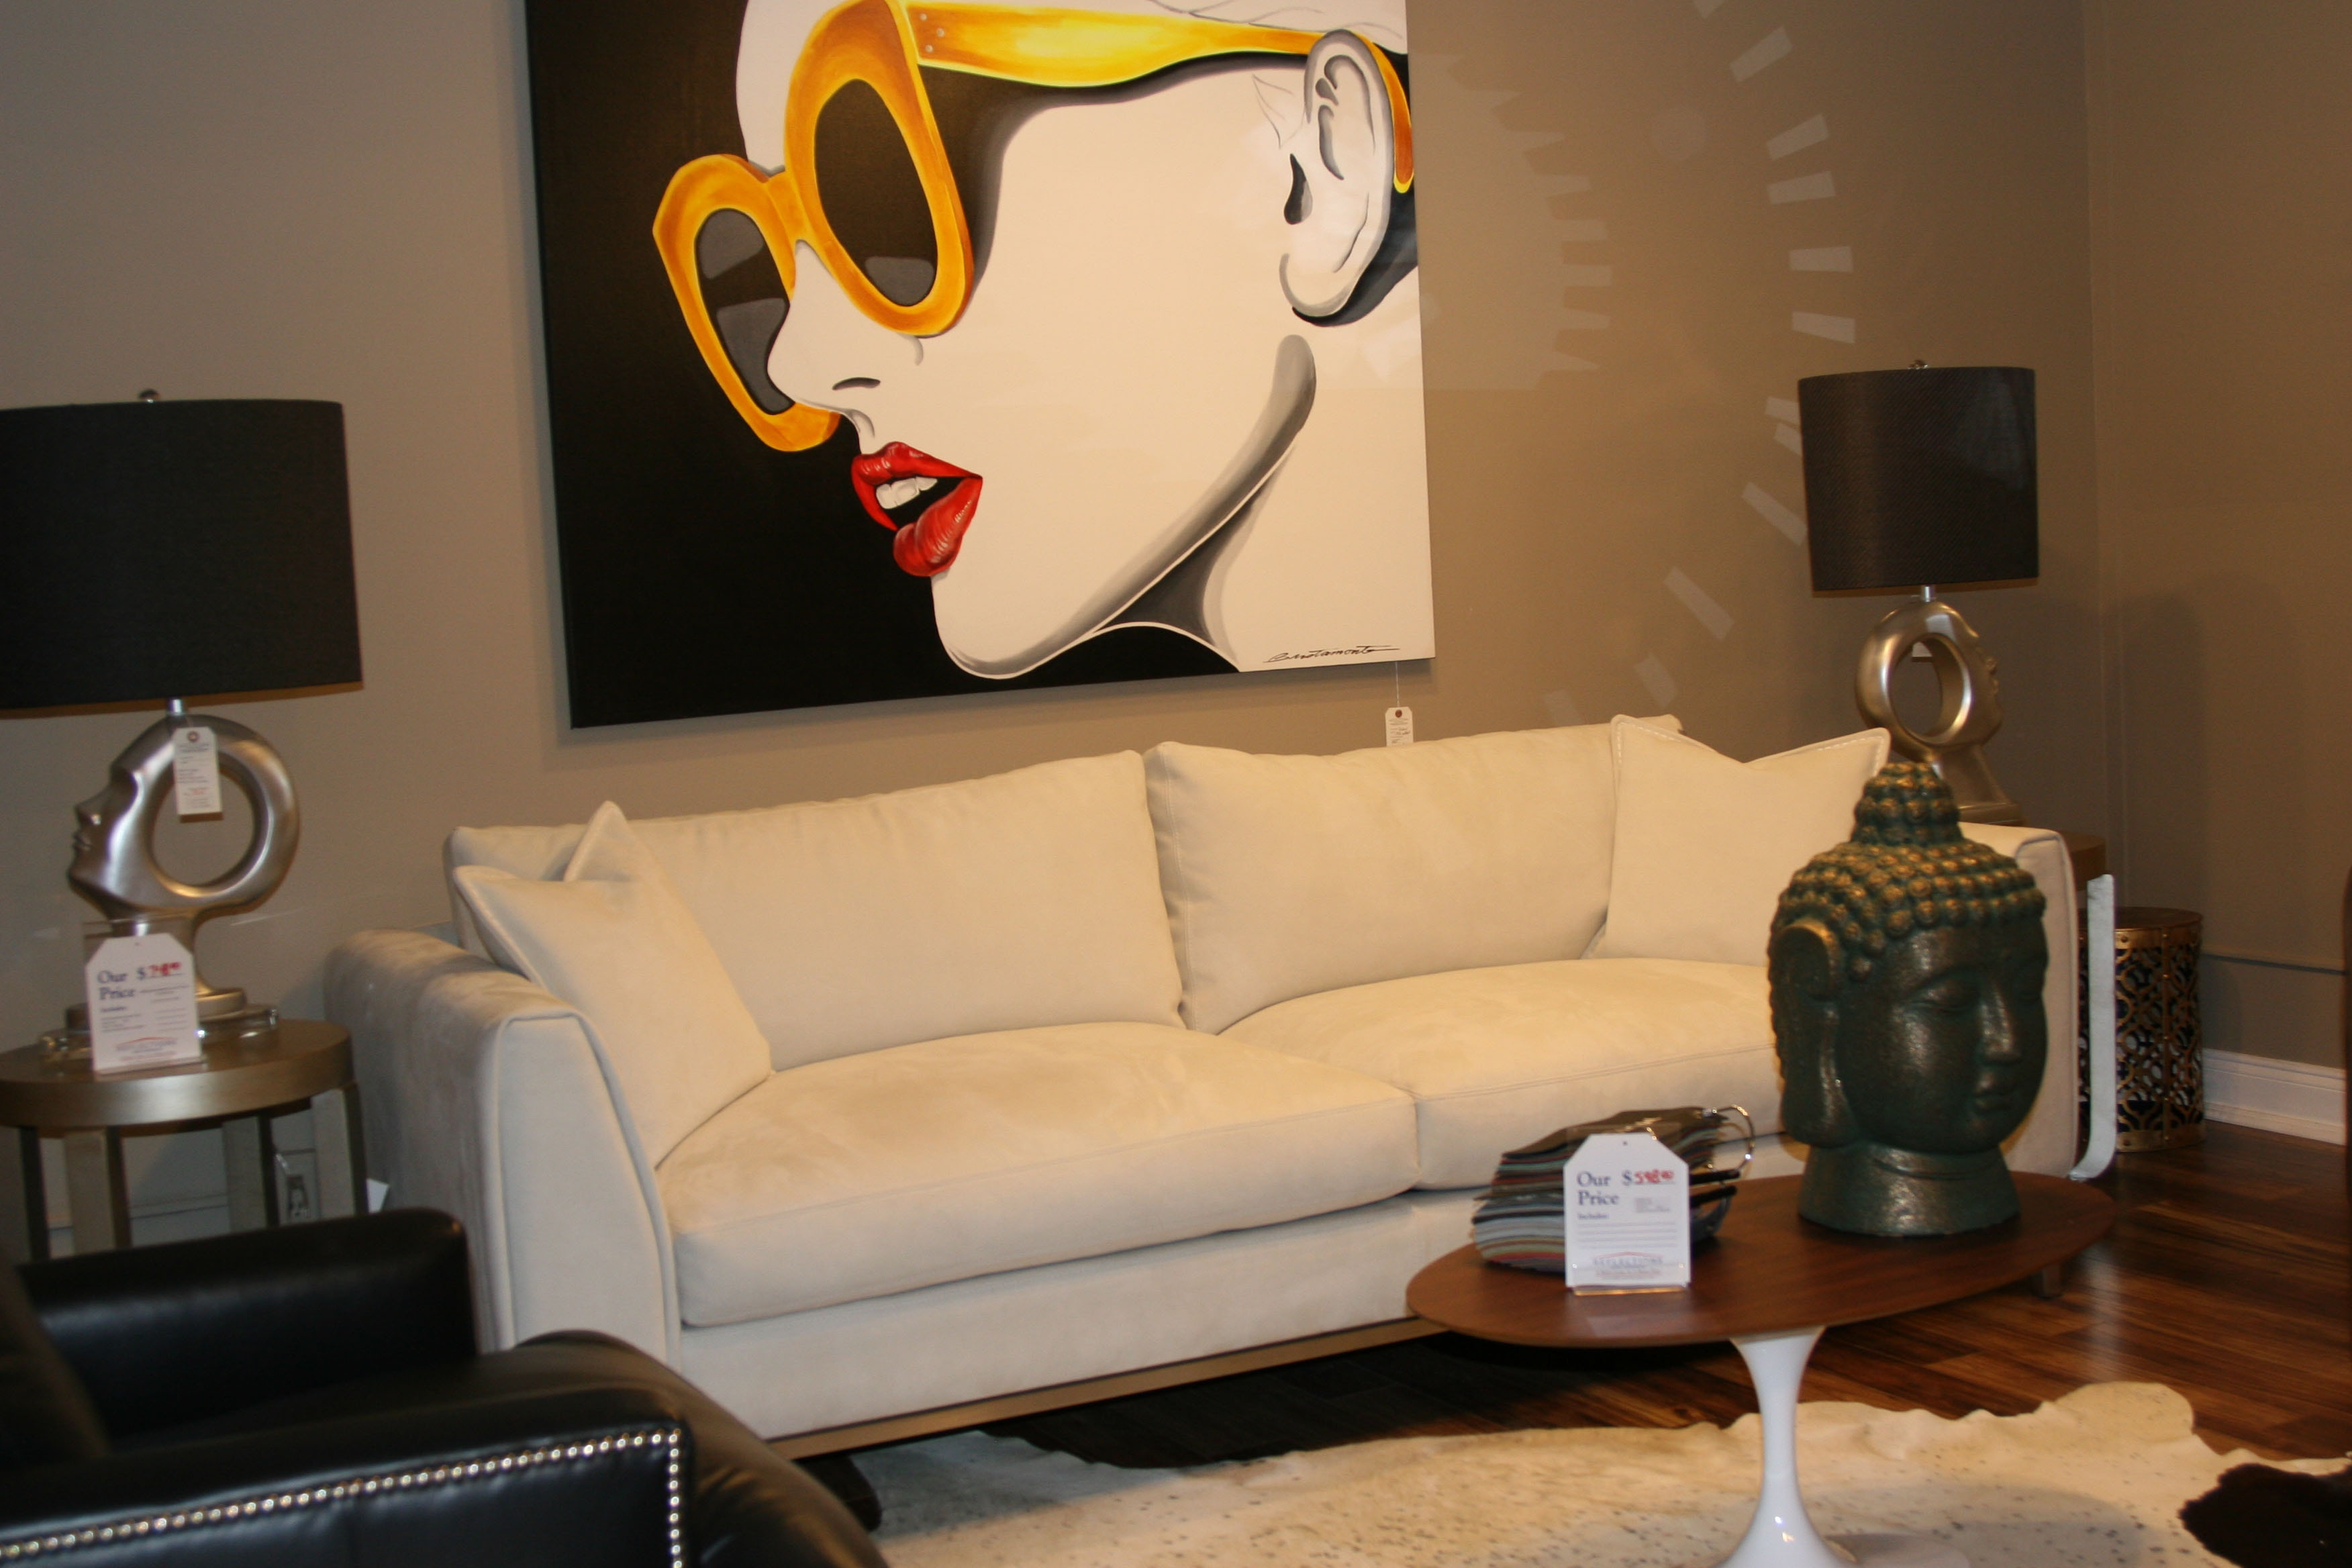 Eleanor Rigby By Reflections Leather Sofa By Eleanor Rigby Leather Co.  Fairfax 30